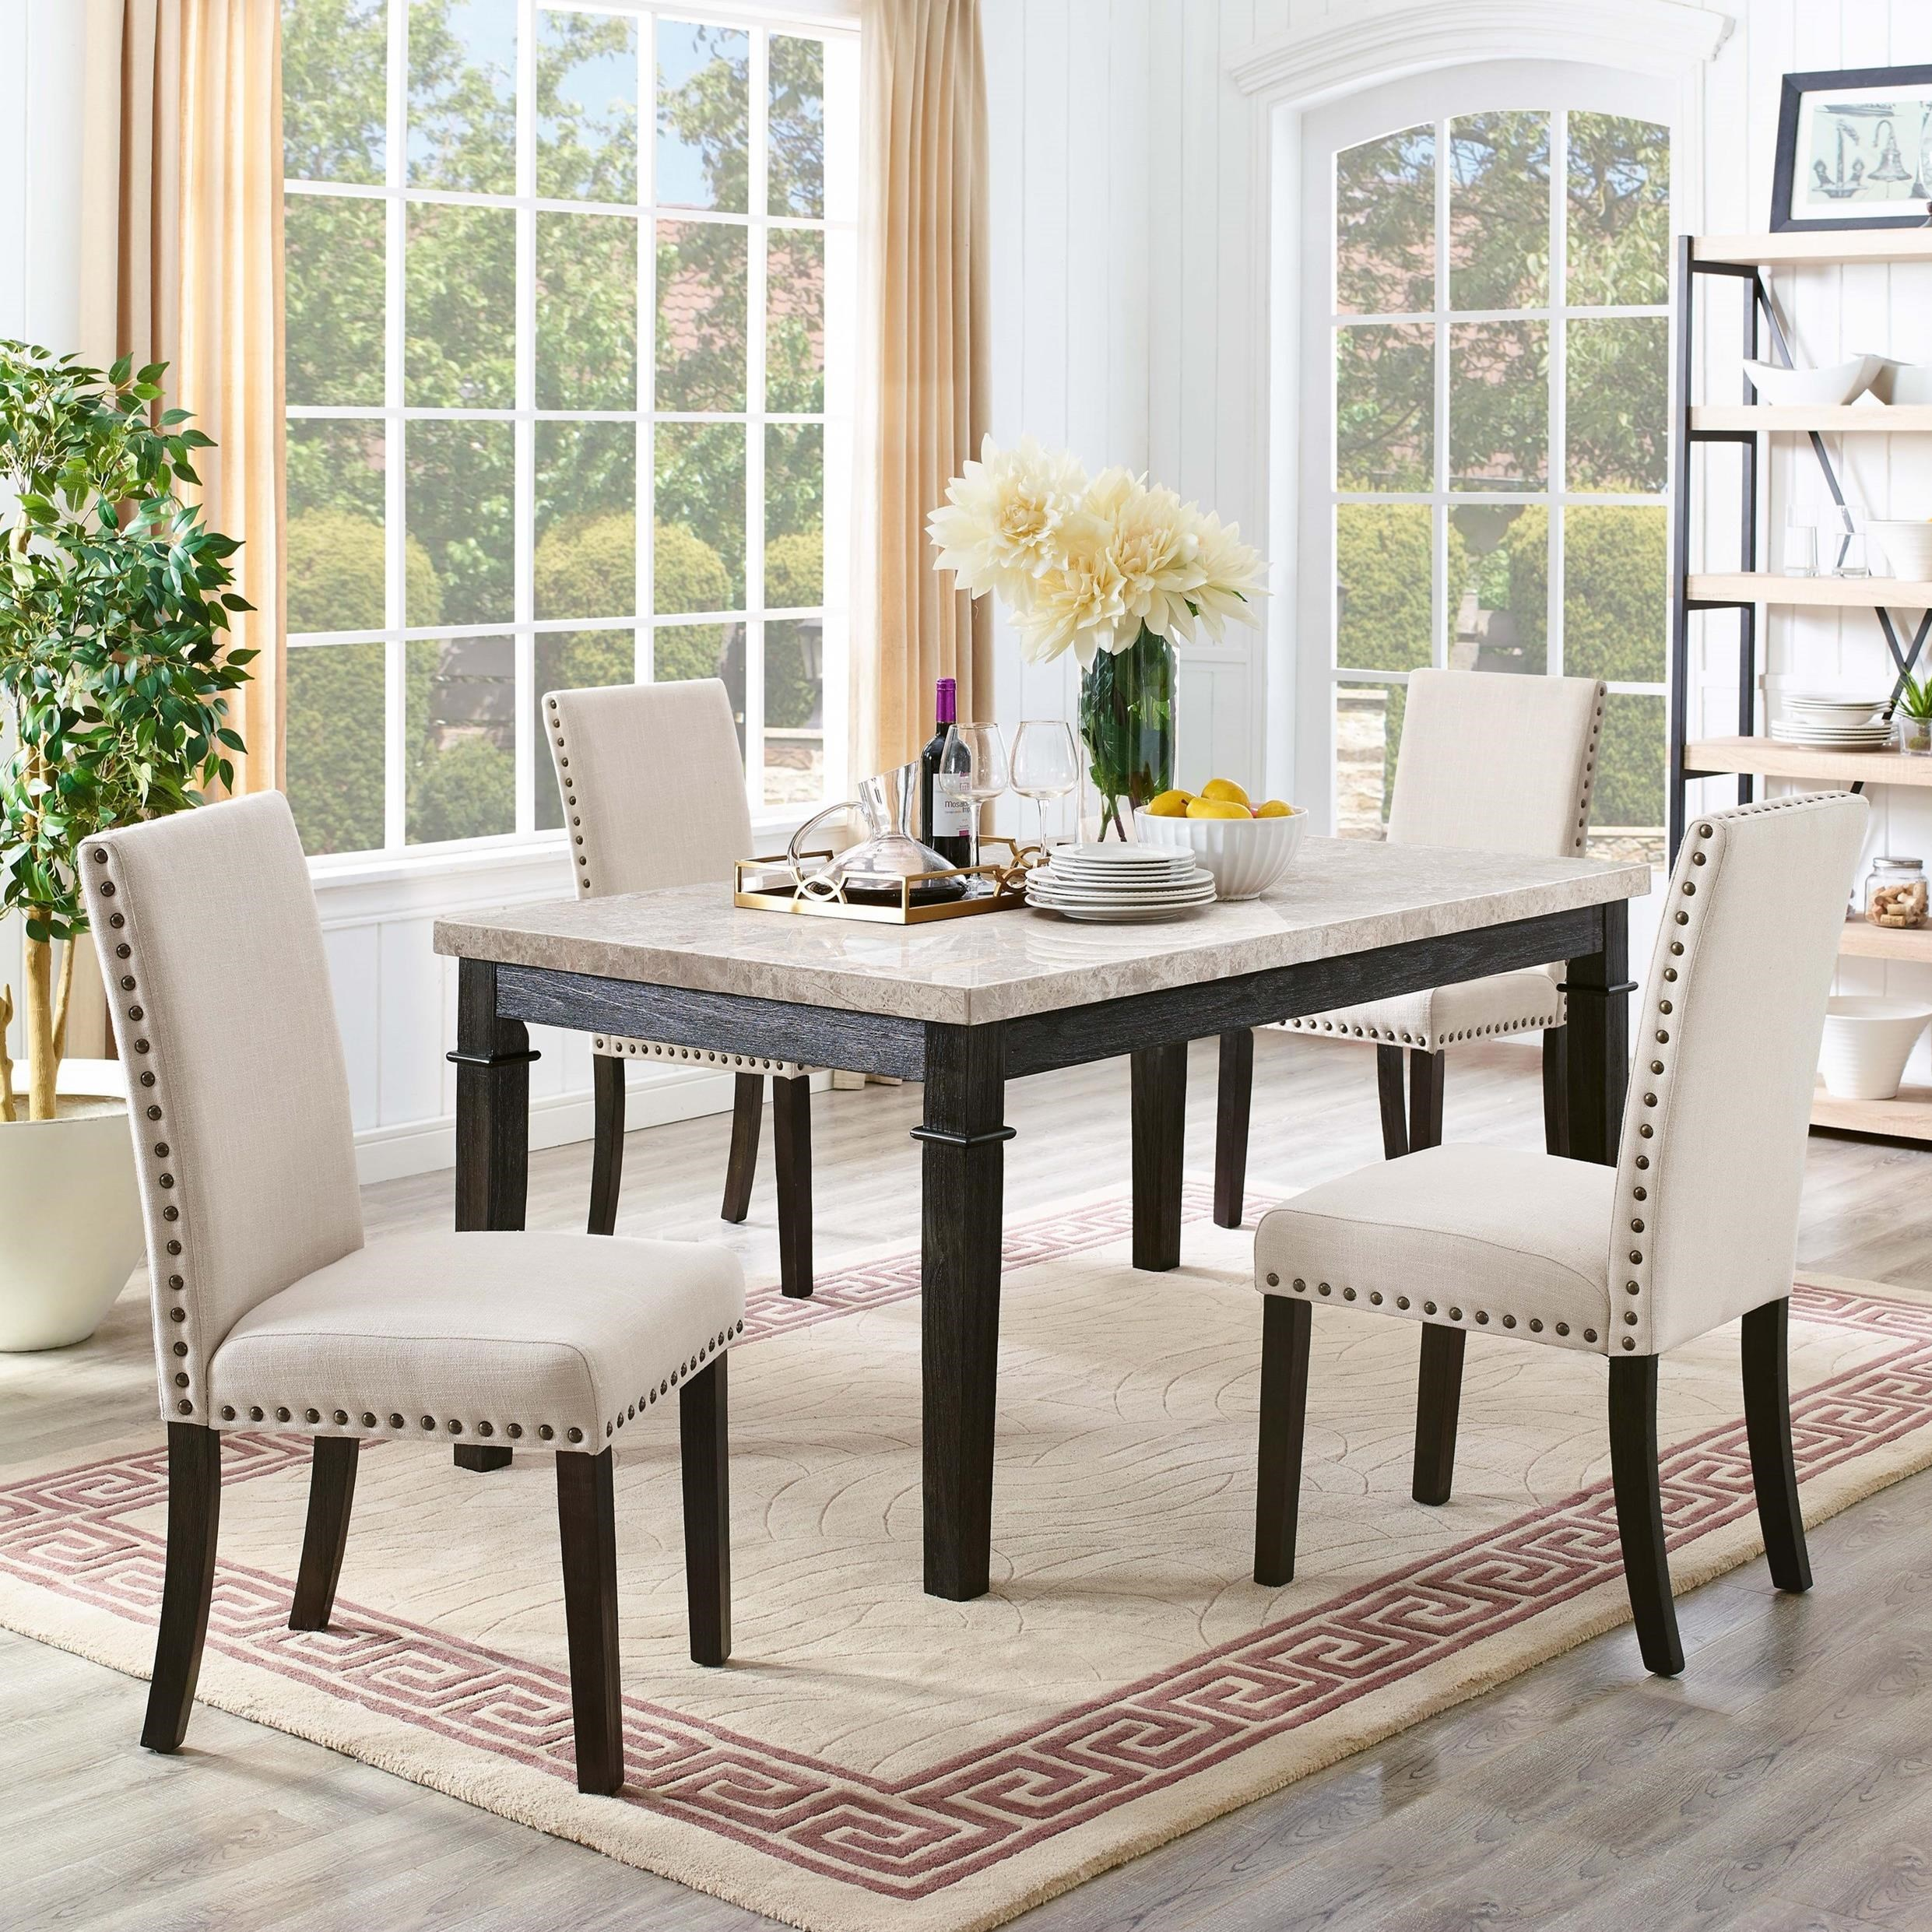 Elements Greystone 5 Piece Dining Set With 4 Upholstered Side Chairs Royal Furniture Dining 5 Piece Sets